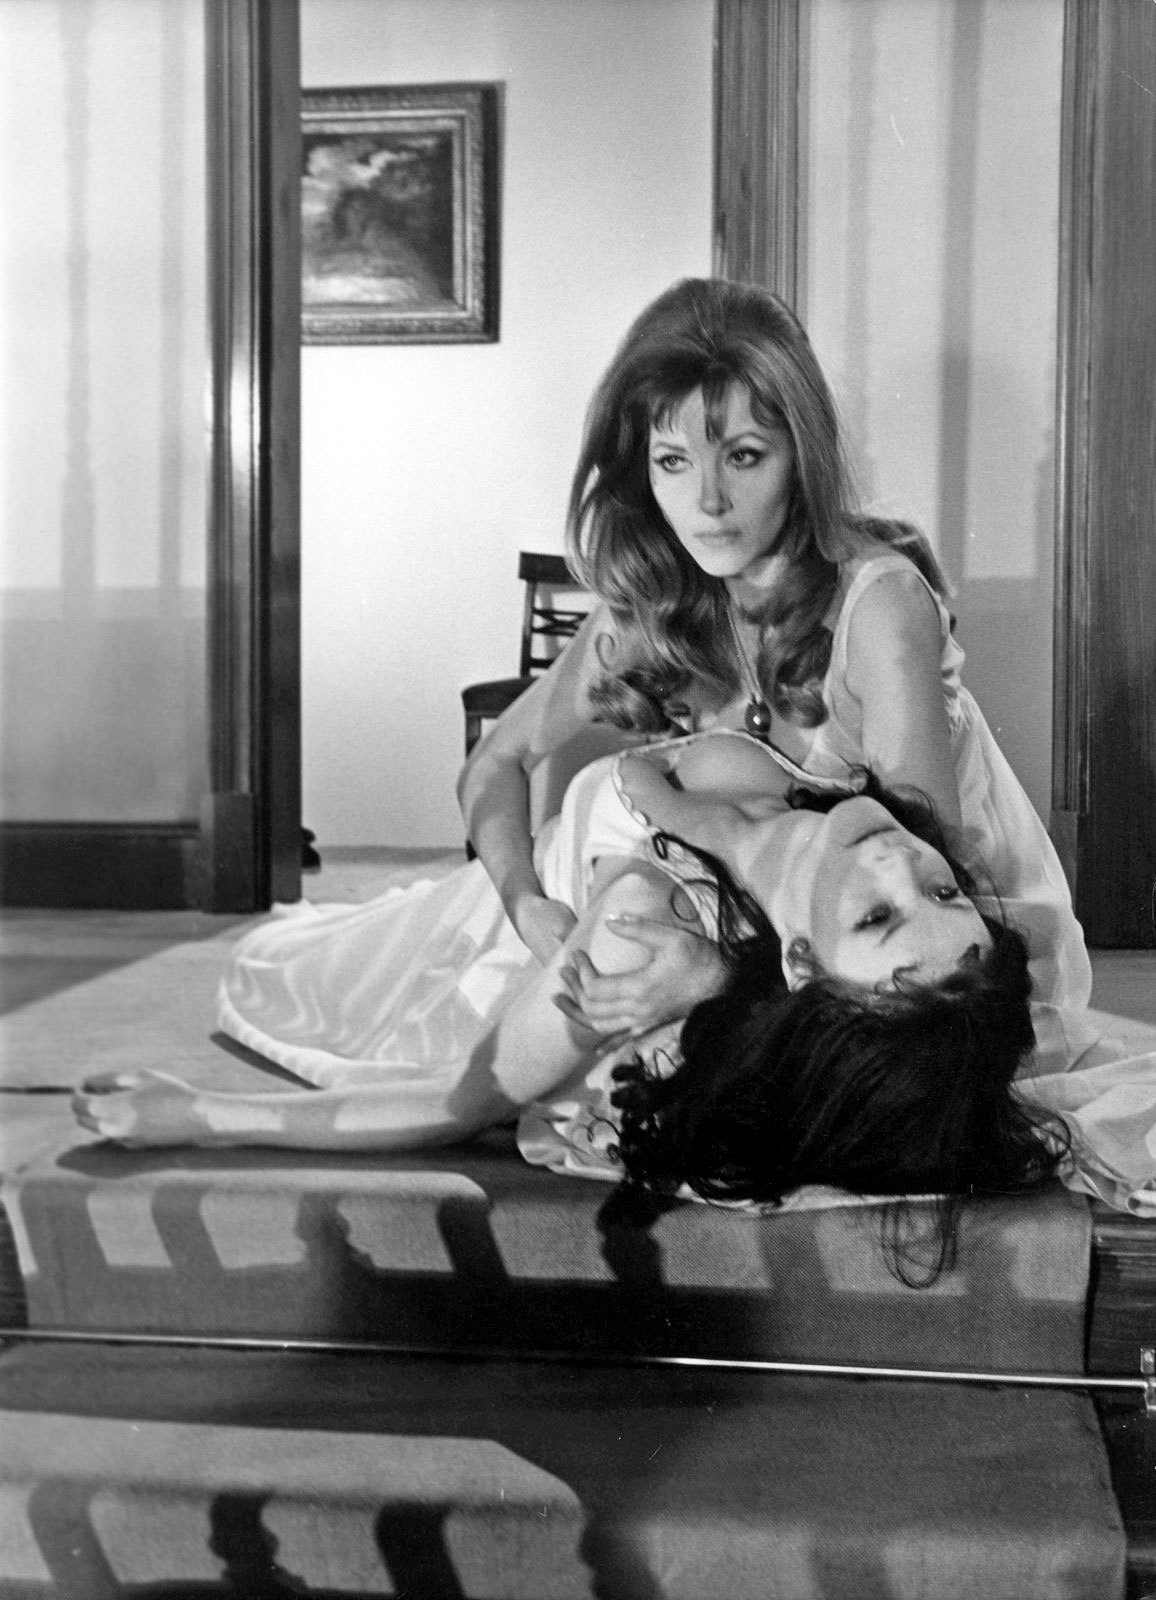 Ingrid Pitt and Kate O'Mara in 'The Vampire Lovers' (1970)